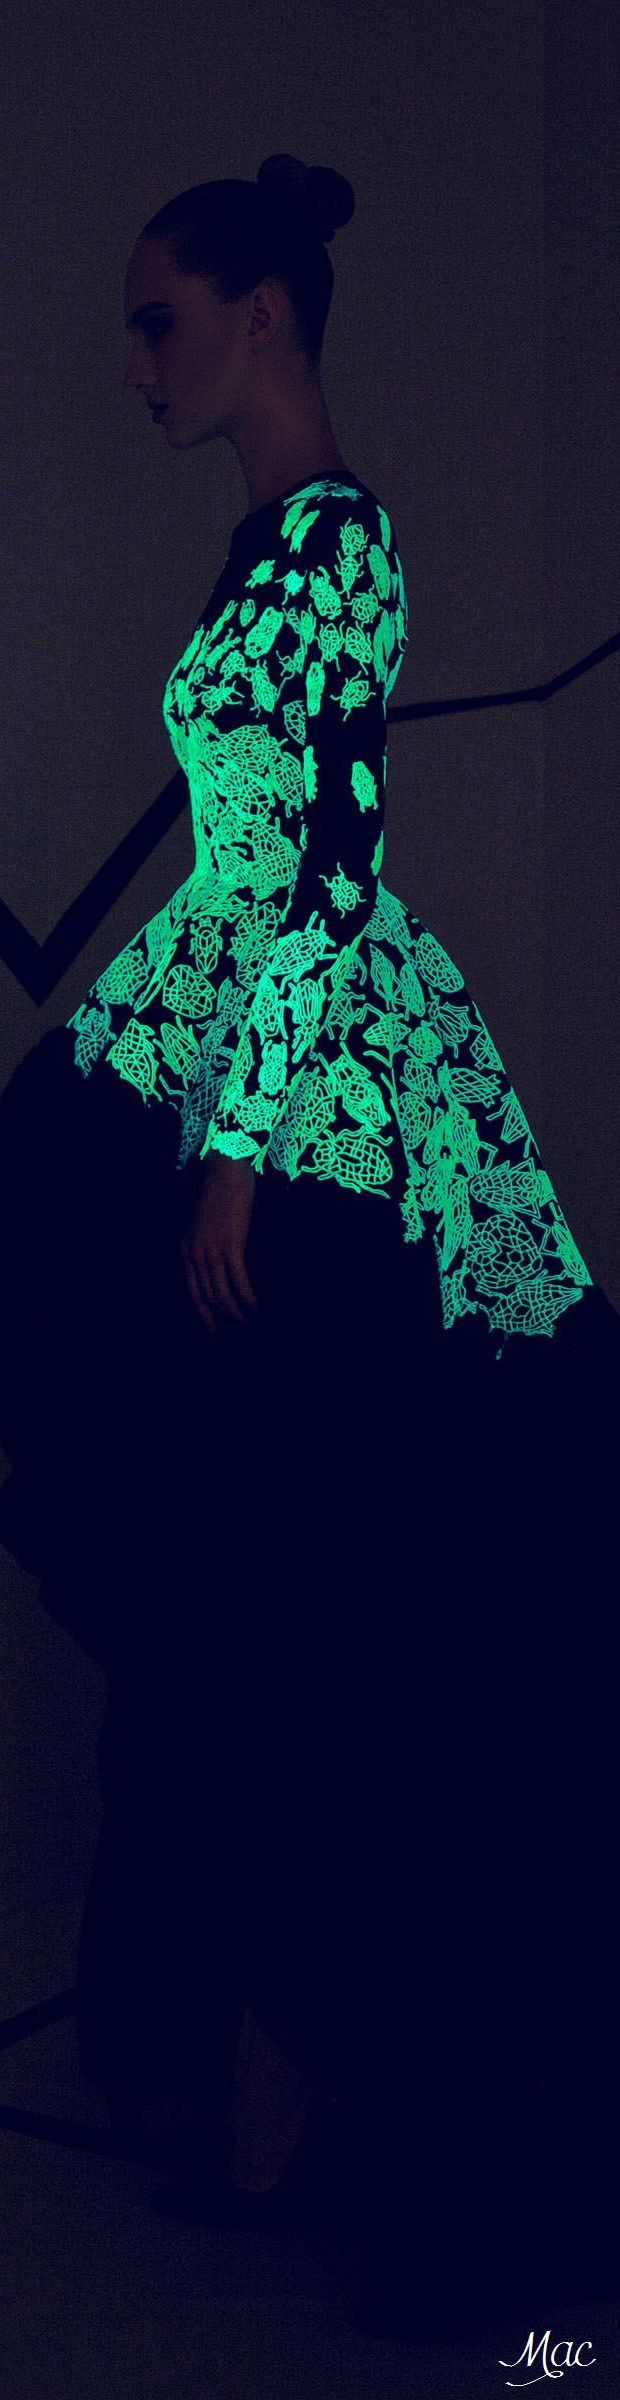 Fall 2015 Couture Rami Kadi (Sewn with Luminous Threads and Sequins)